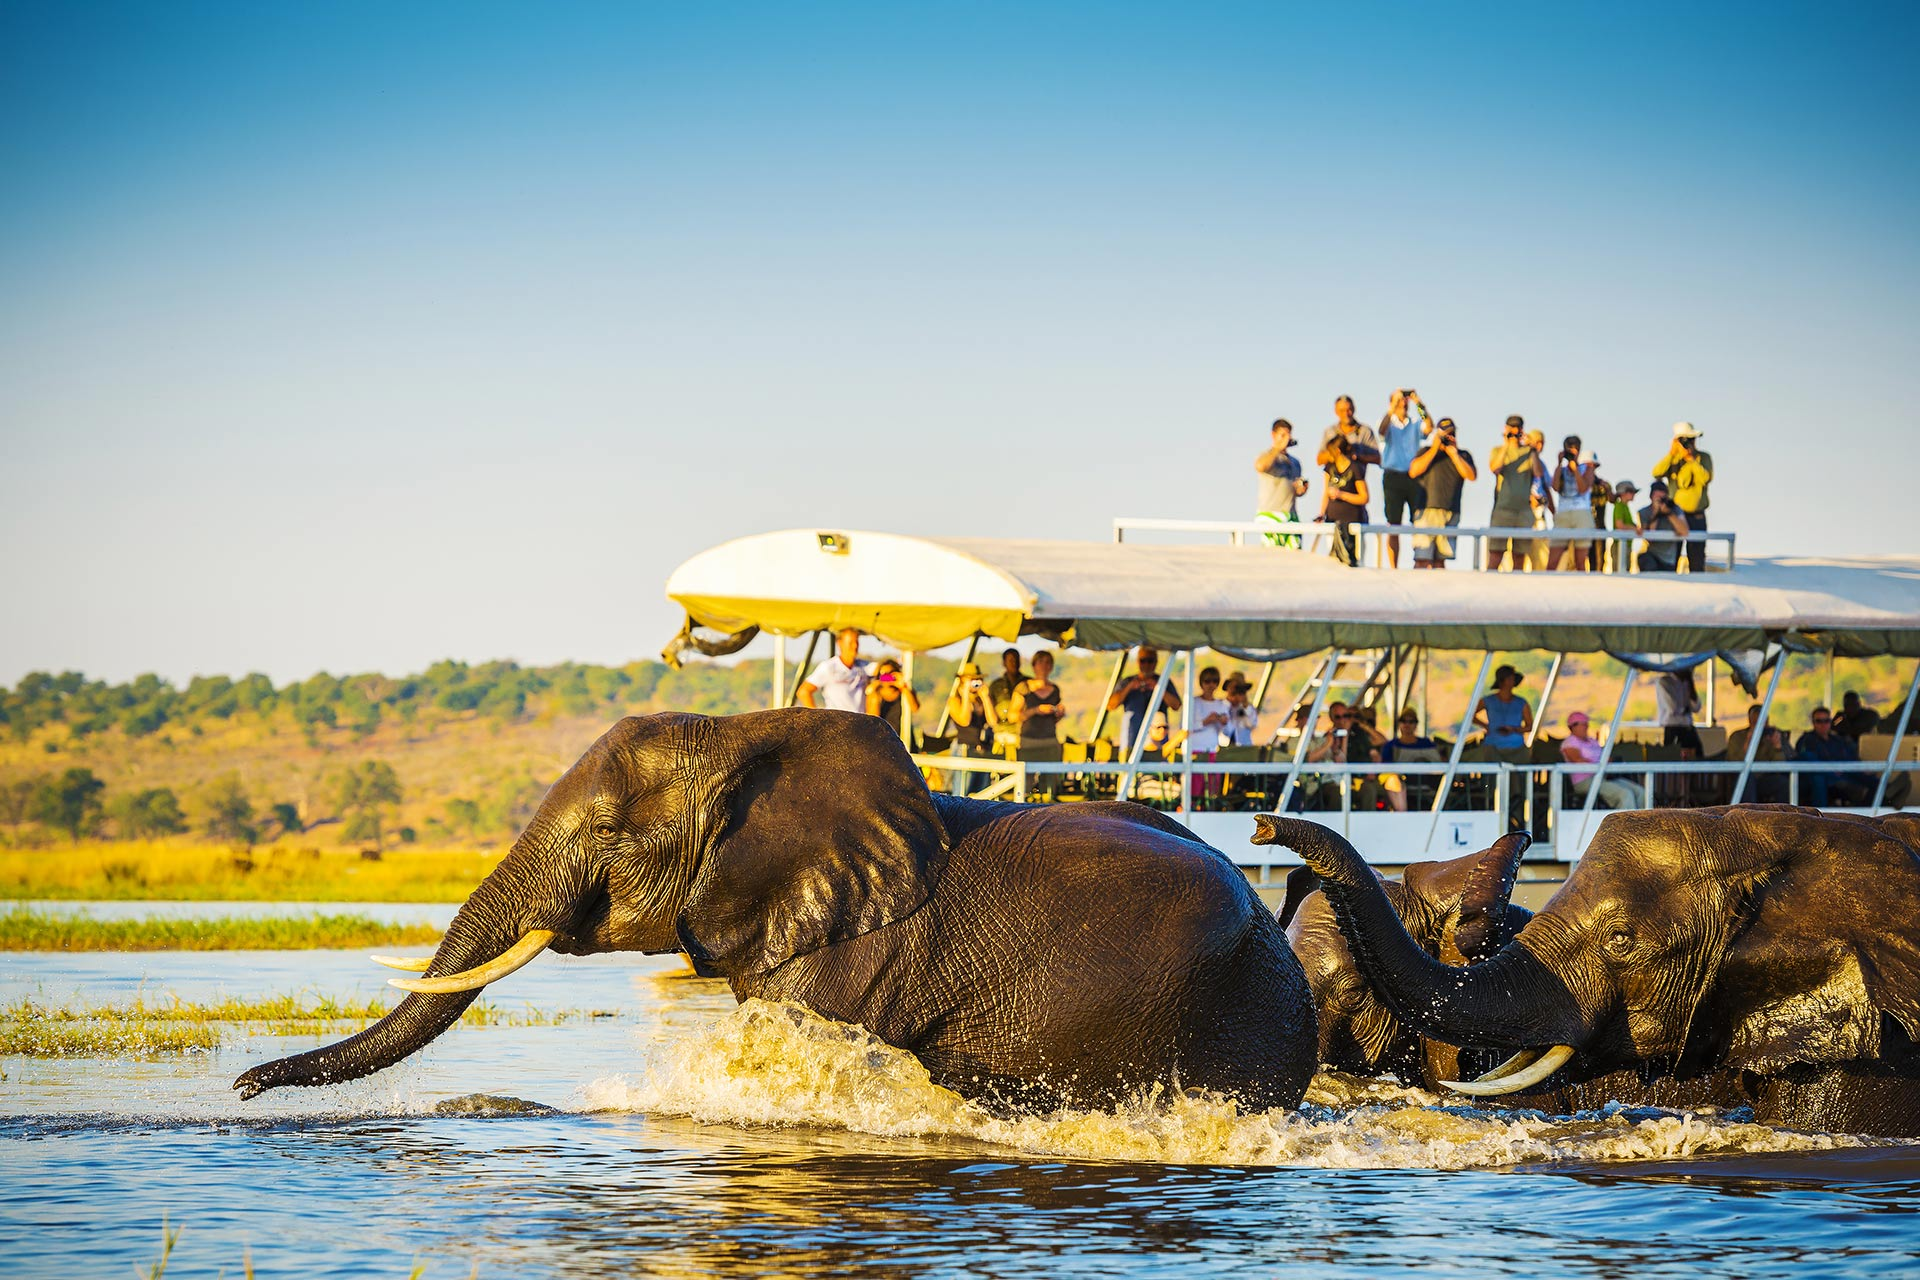 African Safari; Courtesy of THPStock/Shutterstock.com